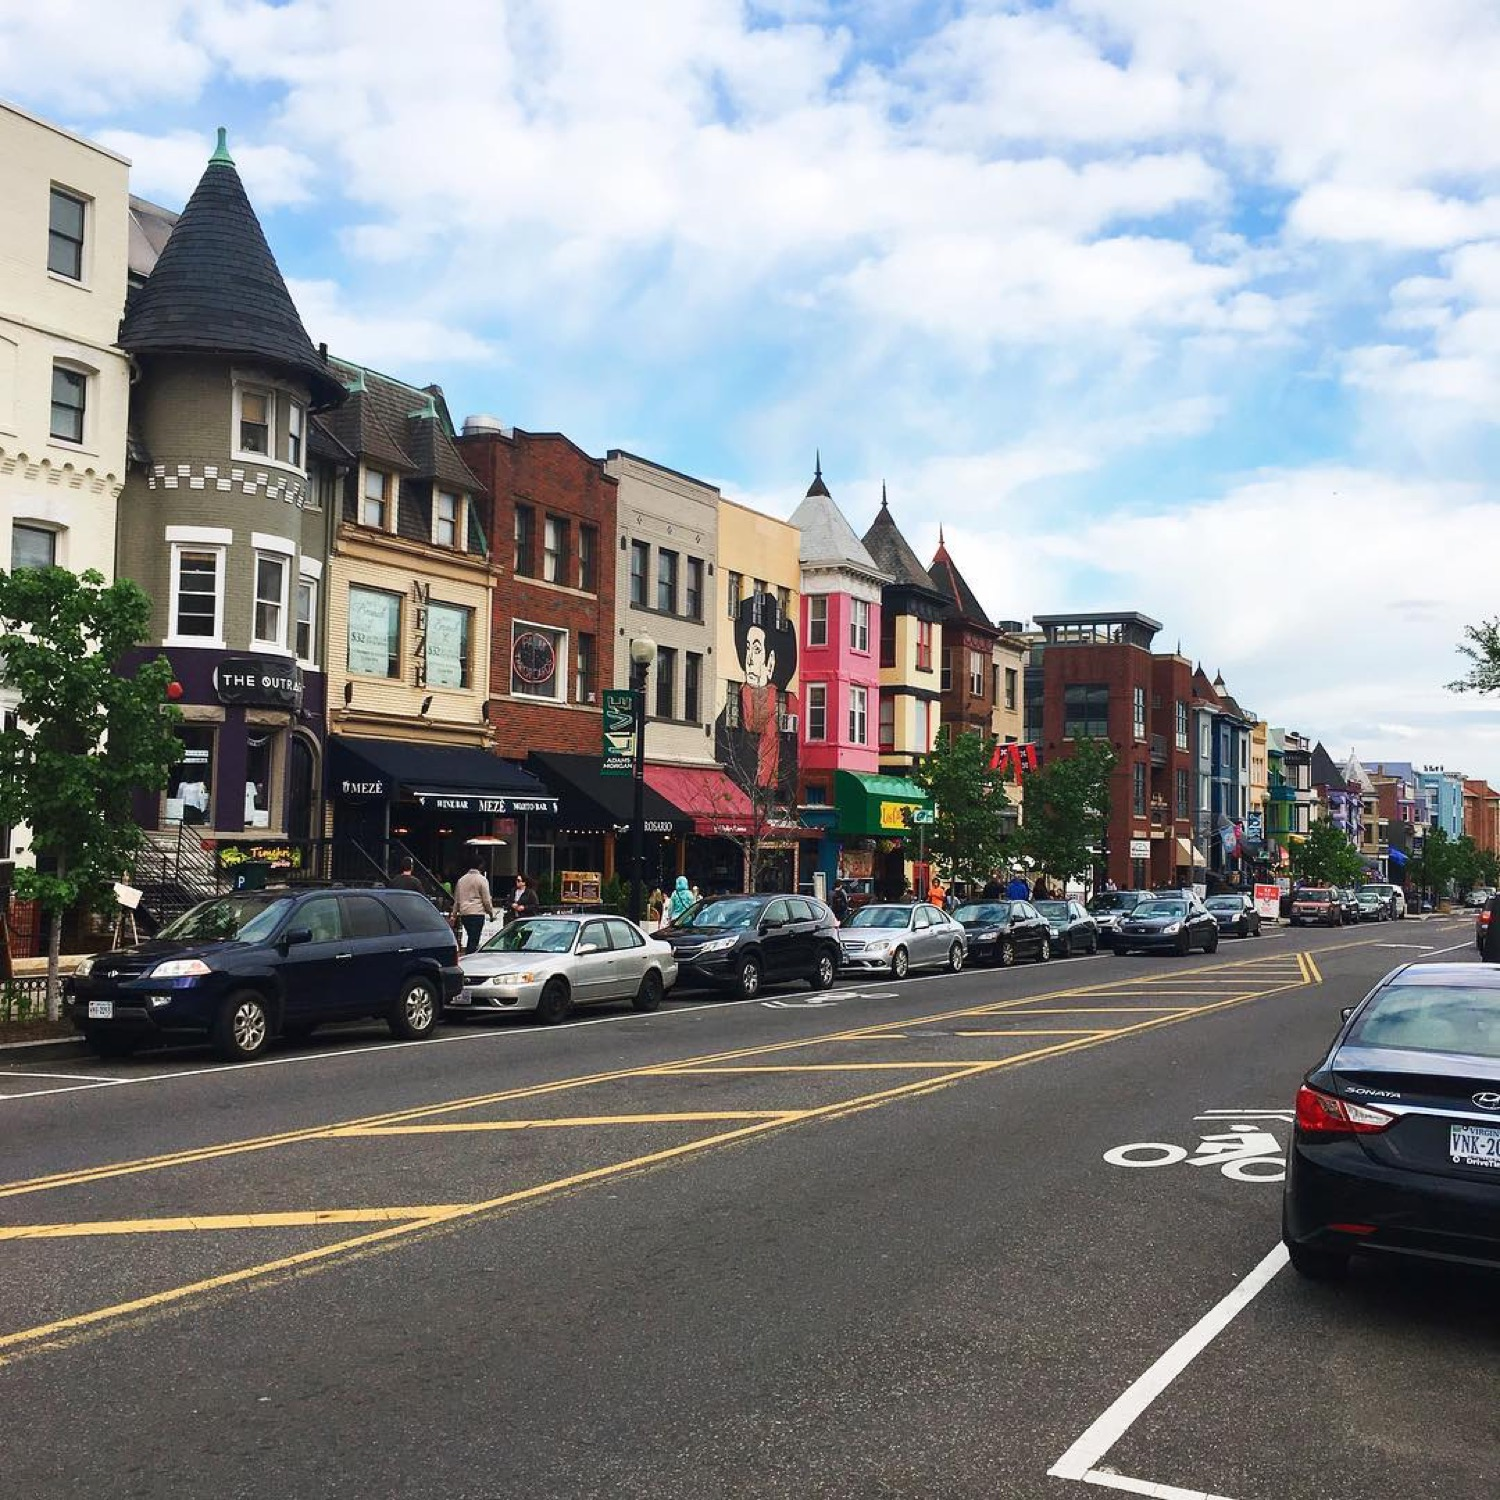 PLACE: Adams Morgan, Washington, DC / MILES FROM CINCY: 500 / ABOUT: Adams Morgan is Washington, DC's cool companion to the high-end Georgetown. With greater diversity and charming architecture, the advantage is Adams Morgans. / Image courtesy of Instagram user @yenzioe // Published: 5.14.17